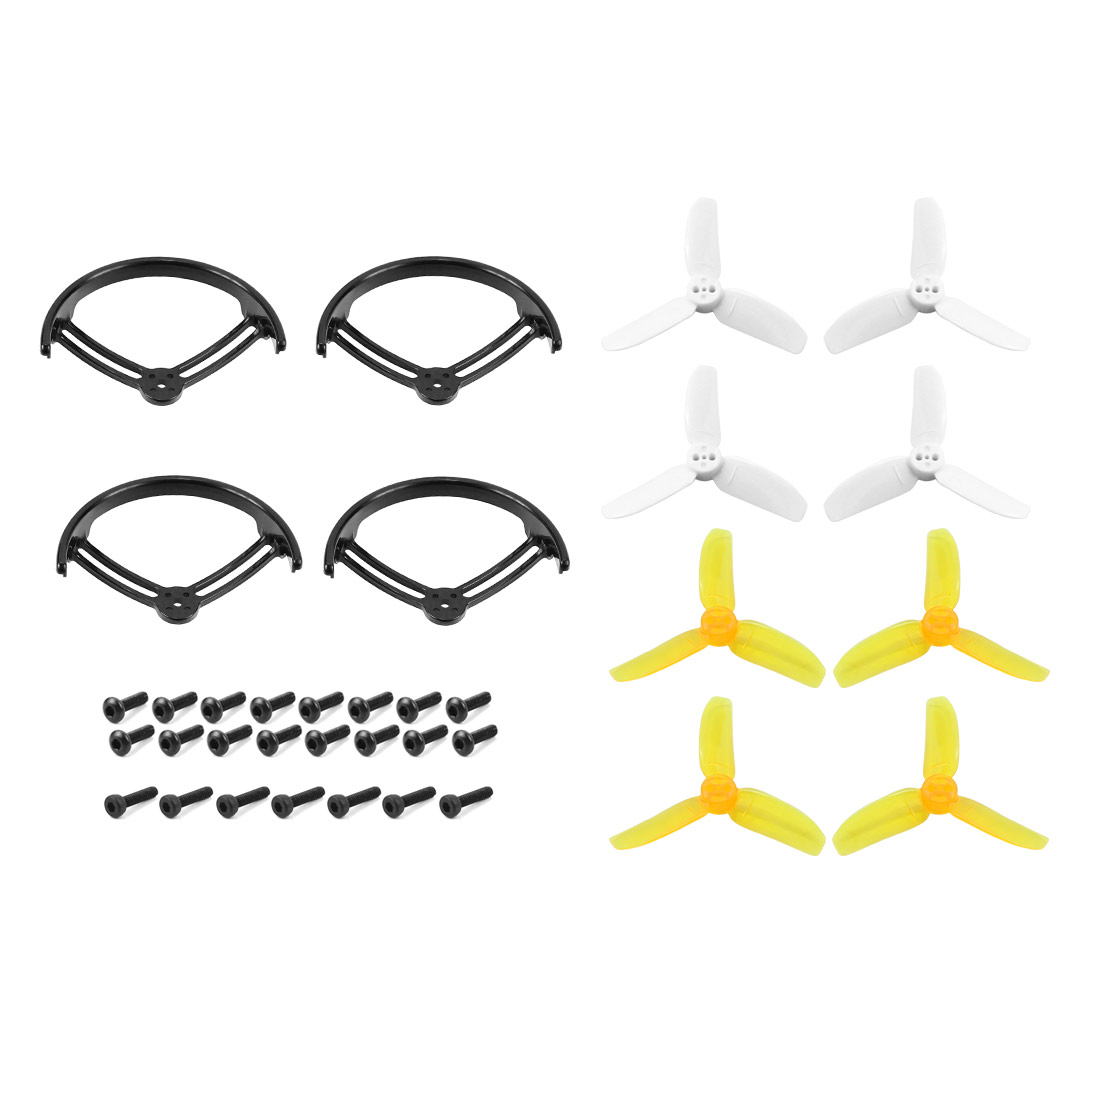 2.8 inch 2840 Prop Guard Protector Bumper for KingKong Drone Half// All Surround